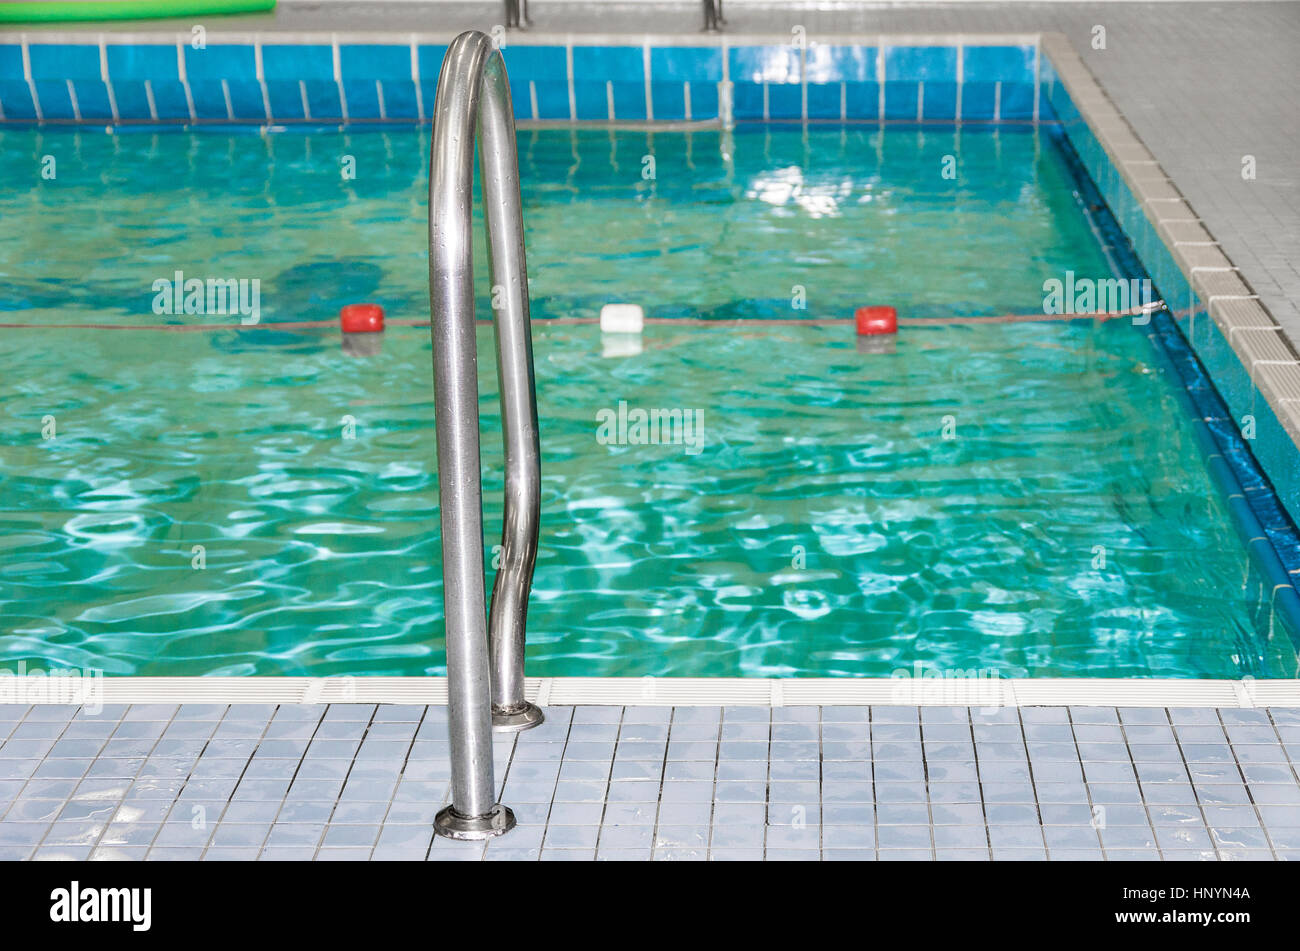 A rope marks the border between the lanes in an indoor swimming pool. - Stock Image